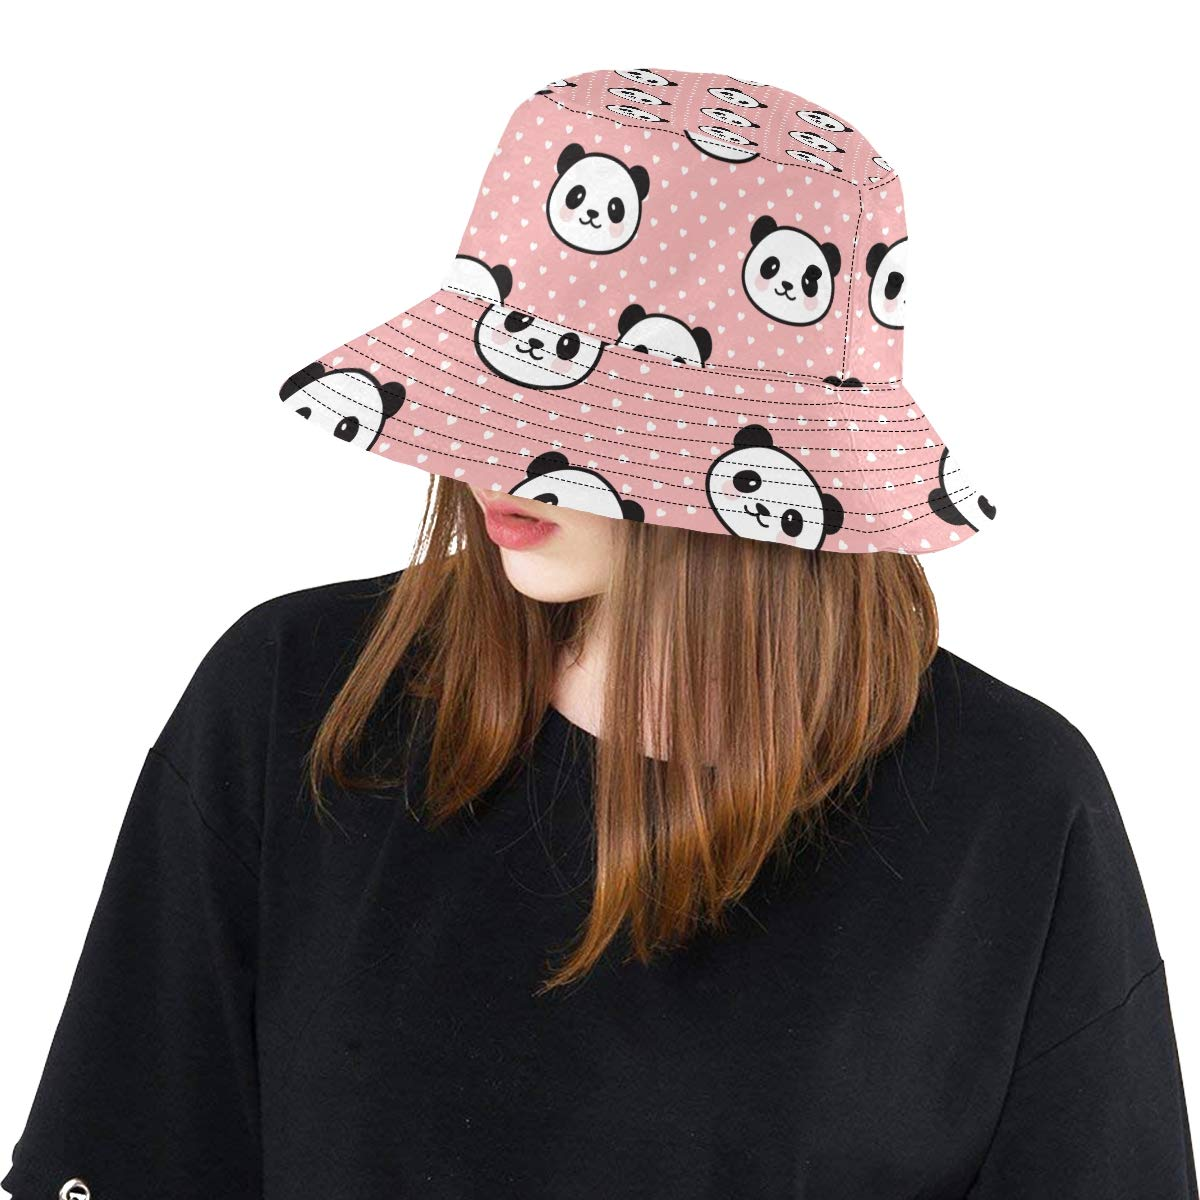 Panda Head from China New Summer Unisex Cotton Fashion Fishing Sun Bucket Hats for Kid Teens Women and Men with Customize Top Packable Fisherman Cap for Outdoor Travel